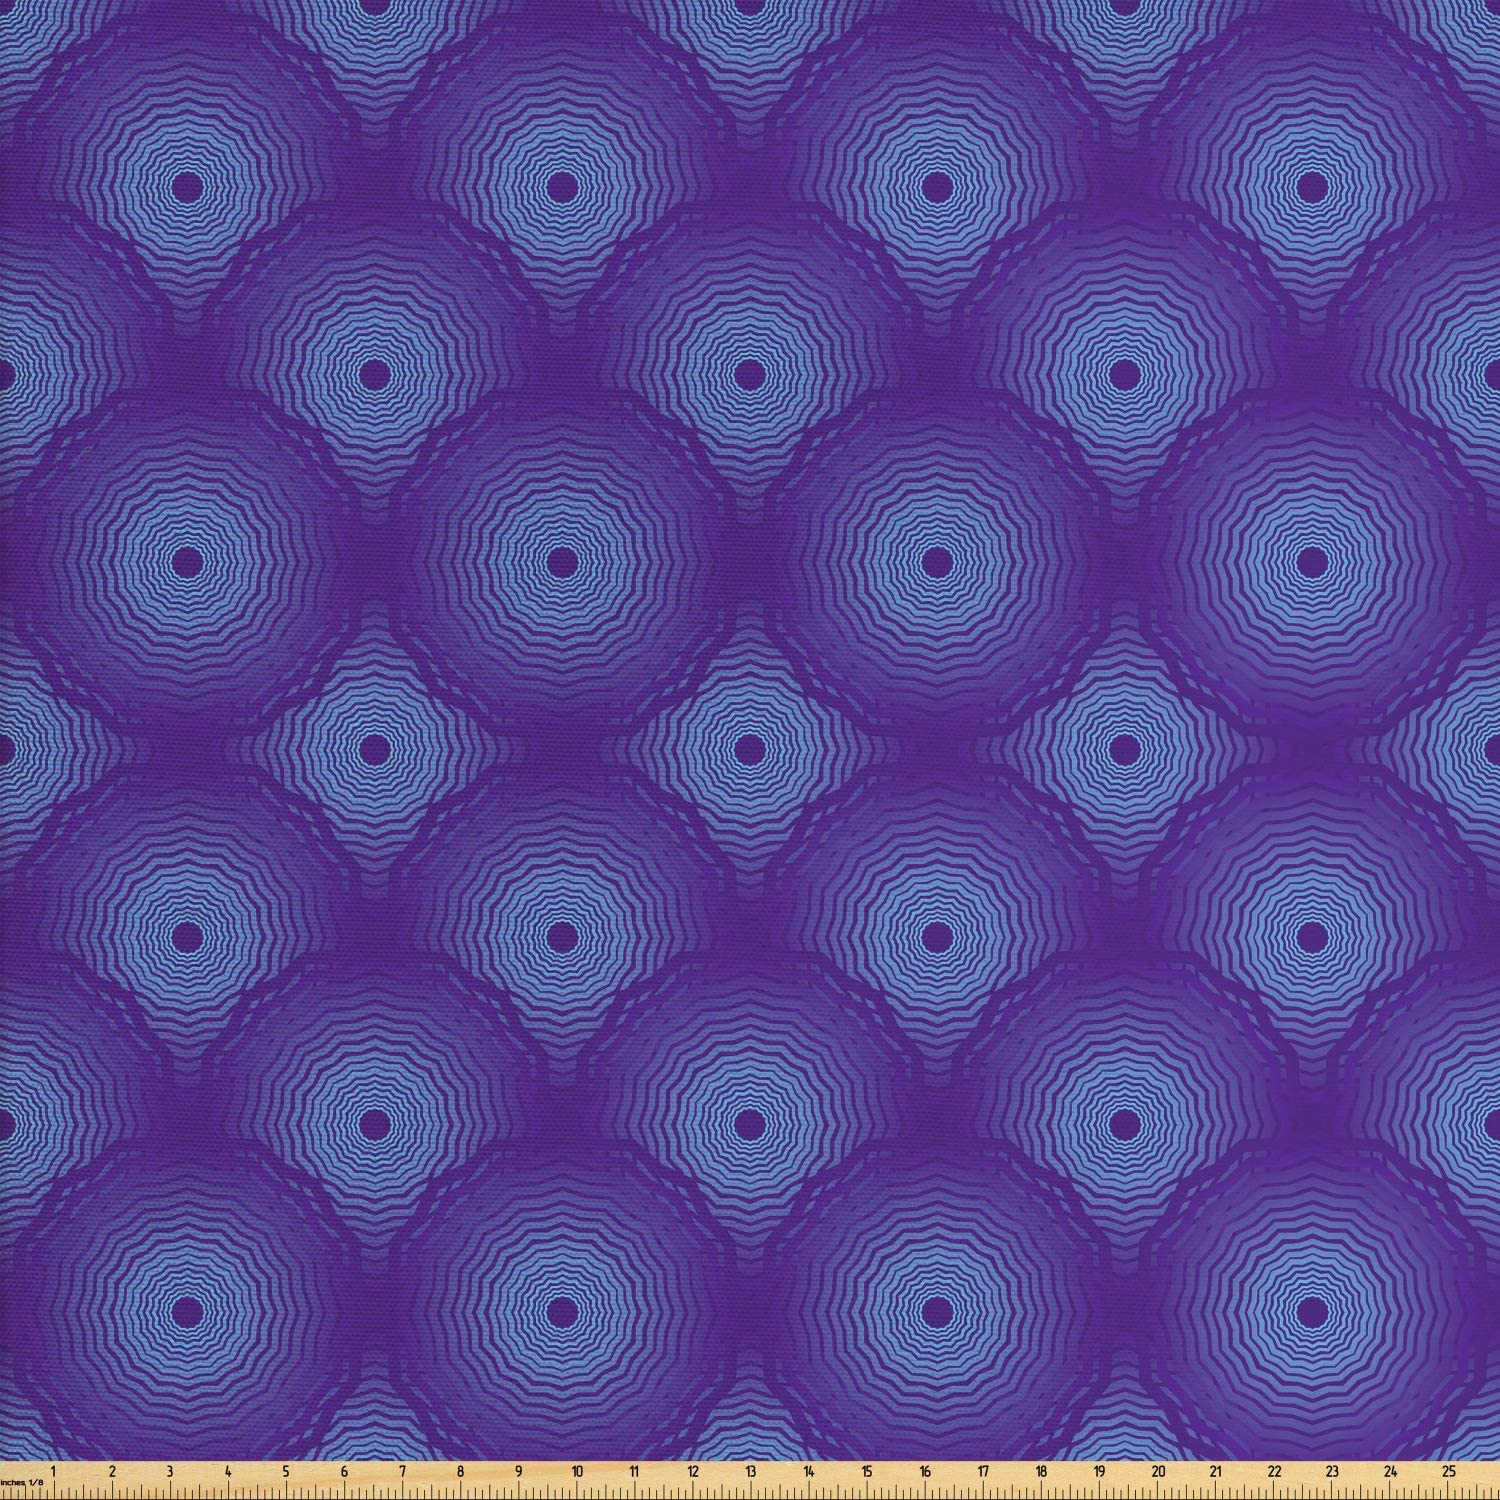 Lunarable Geometric Fabric by The Yard, Concentric Bullseye Circles Wavy Shapes Abstract Arrangement in Purple Tones, Decorative Fabric for Upholstery and Home Accents, 1 Yard, Purple Blue